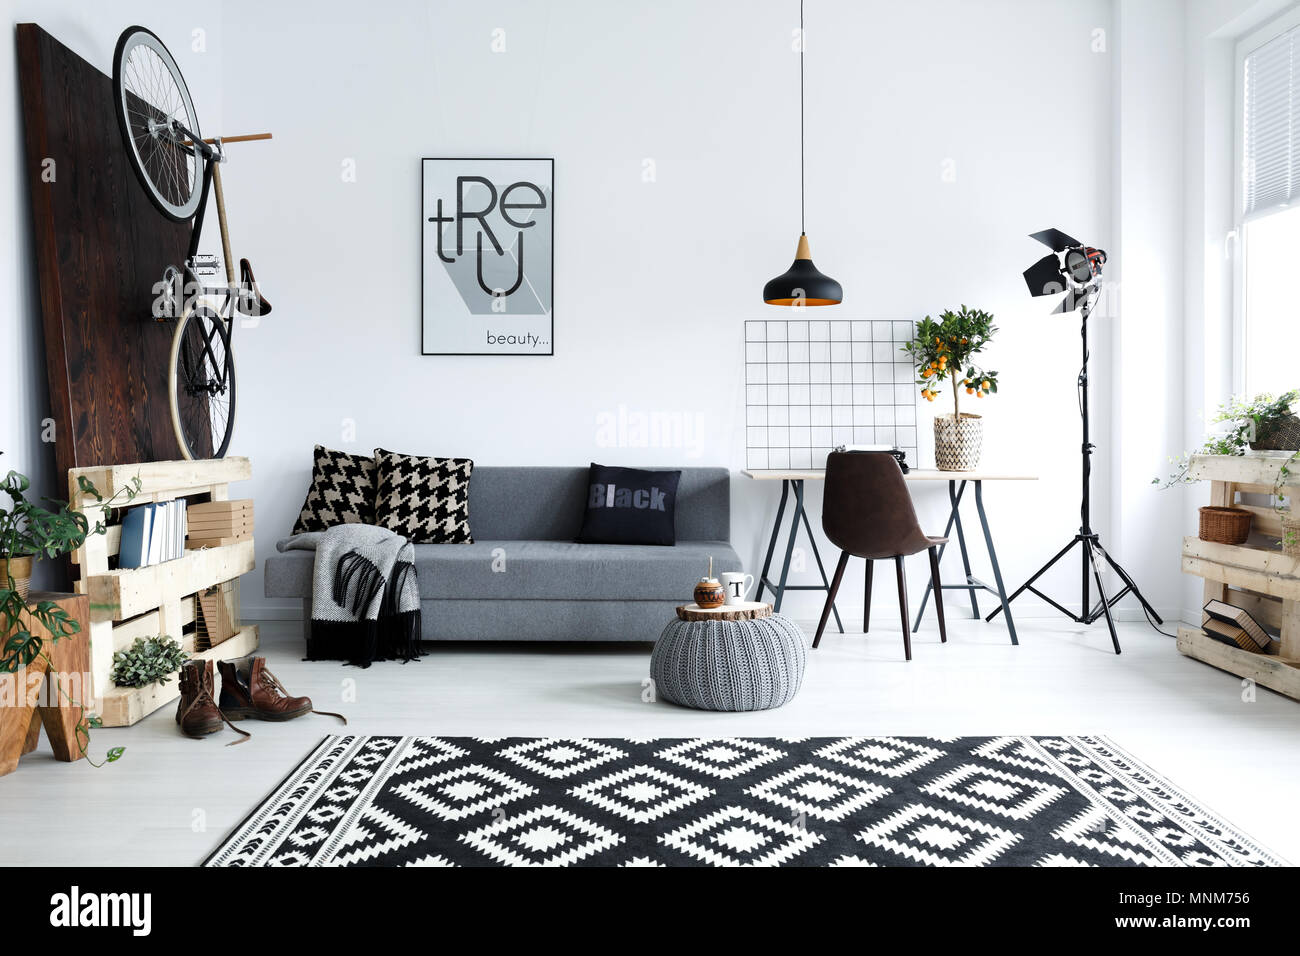 Hipster Style White Living Room With Sofa Pouf Carpet Bike Stock - White-living-room-style